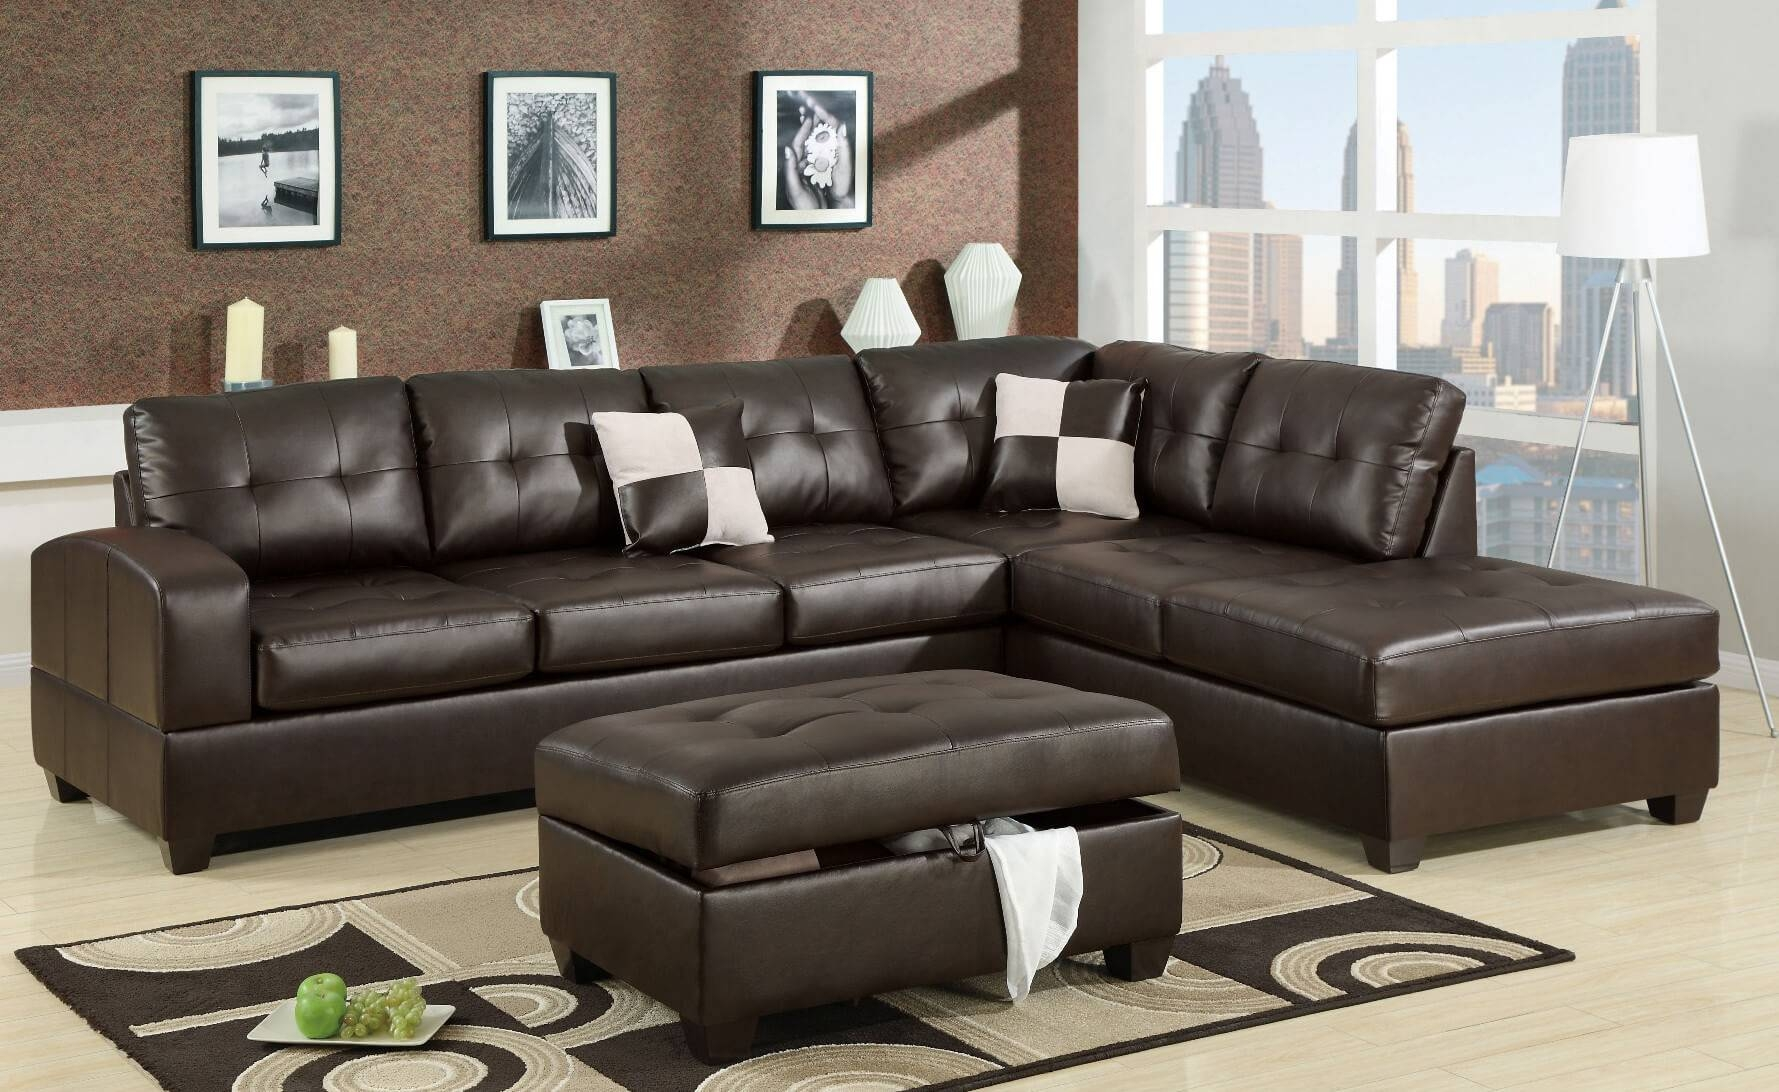 100 Beautiful Sectional Sofas Under $1,000 within Comfy Sectional Sofa (Image 2 of 30)